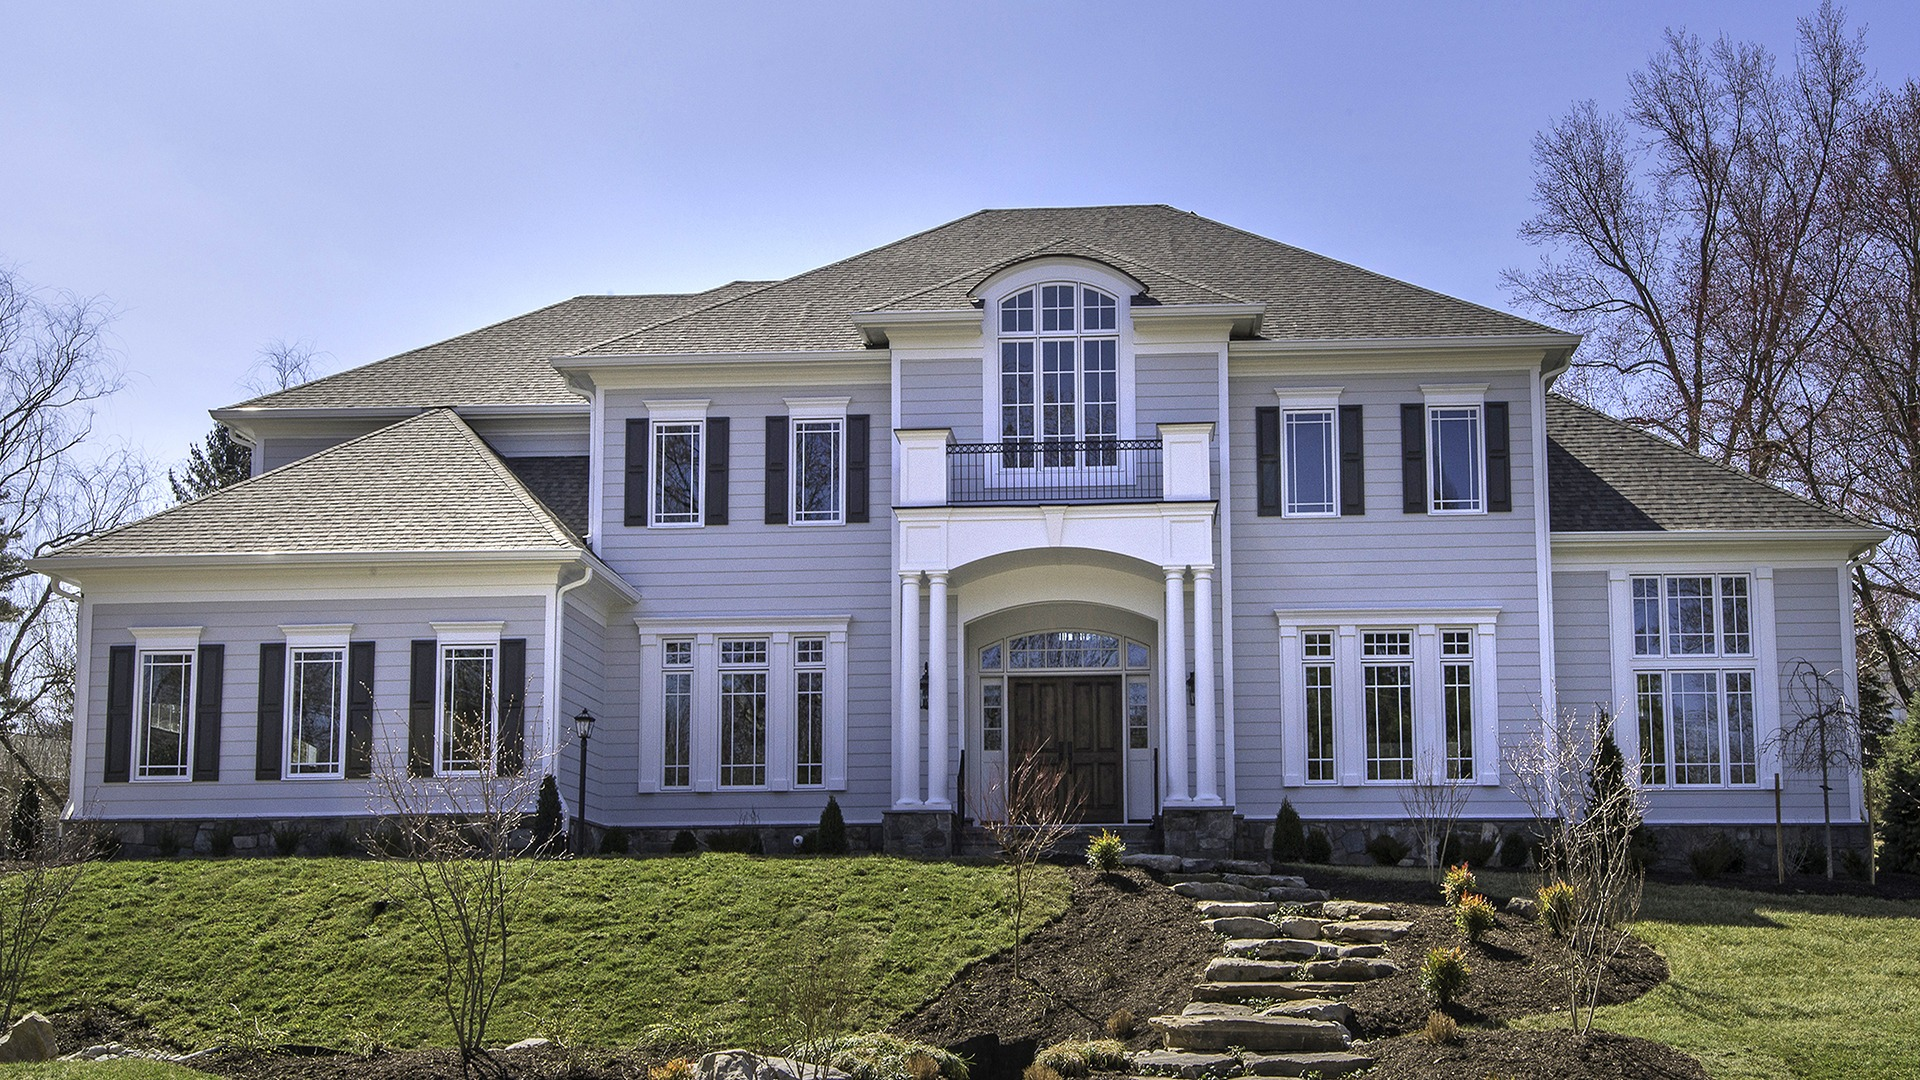 The Elevation at Carper Street, a Gulick | One custom home.